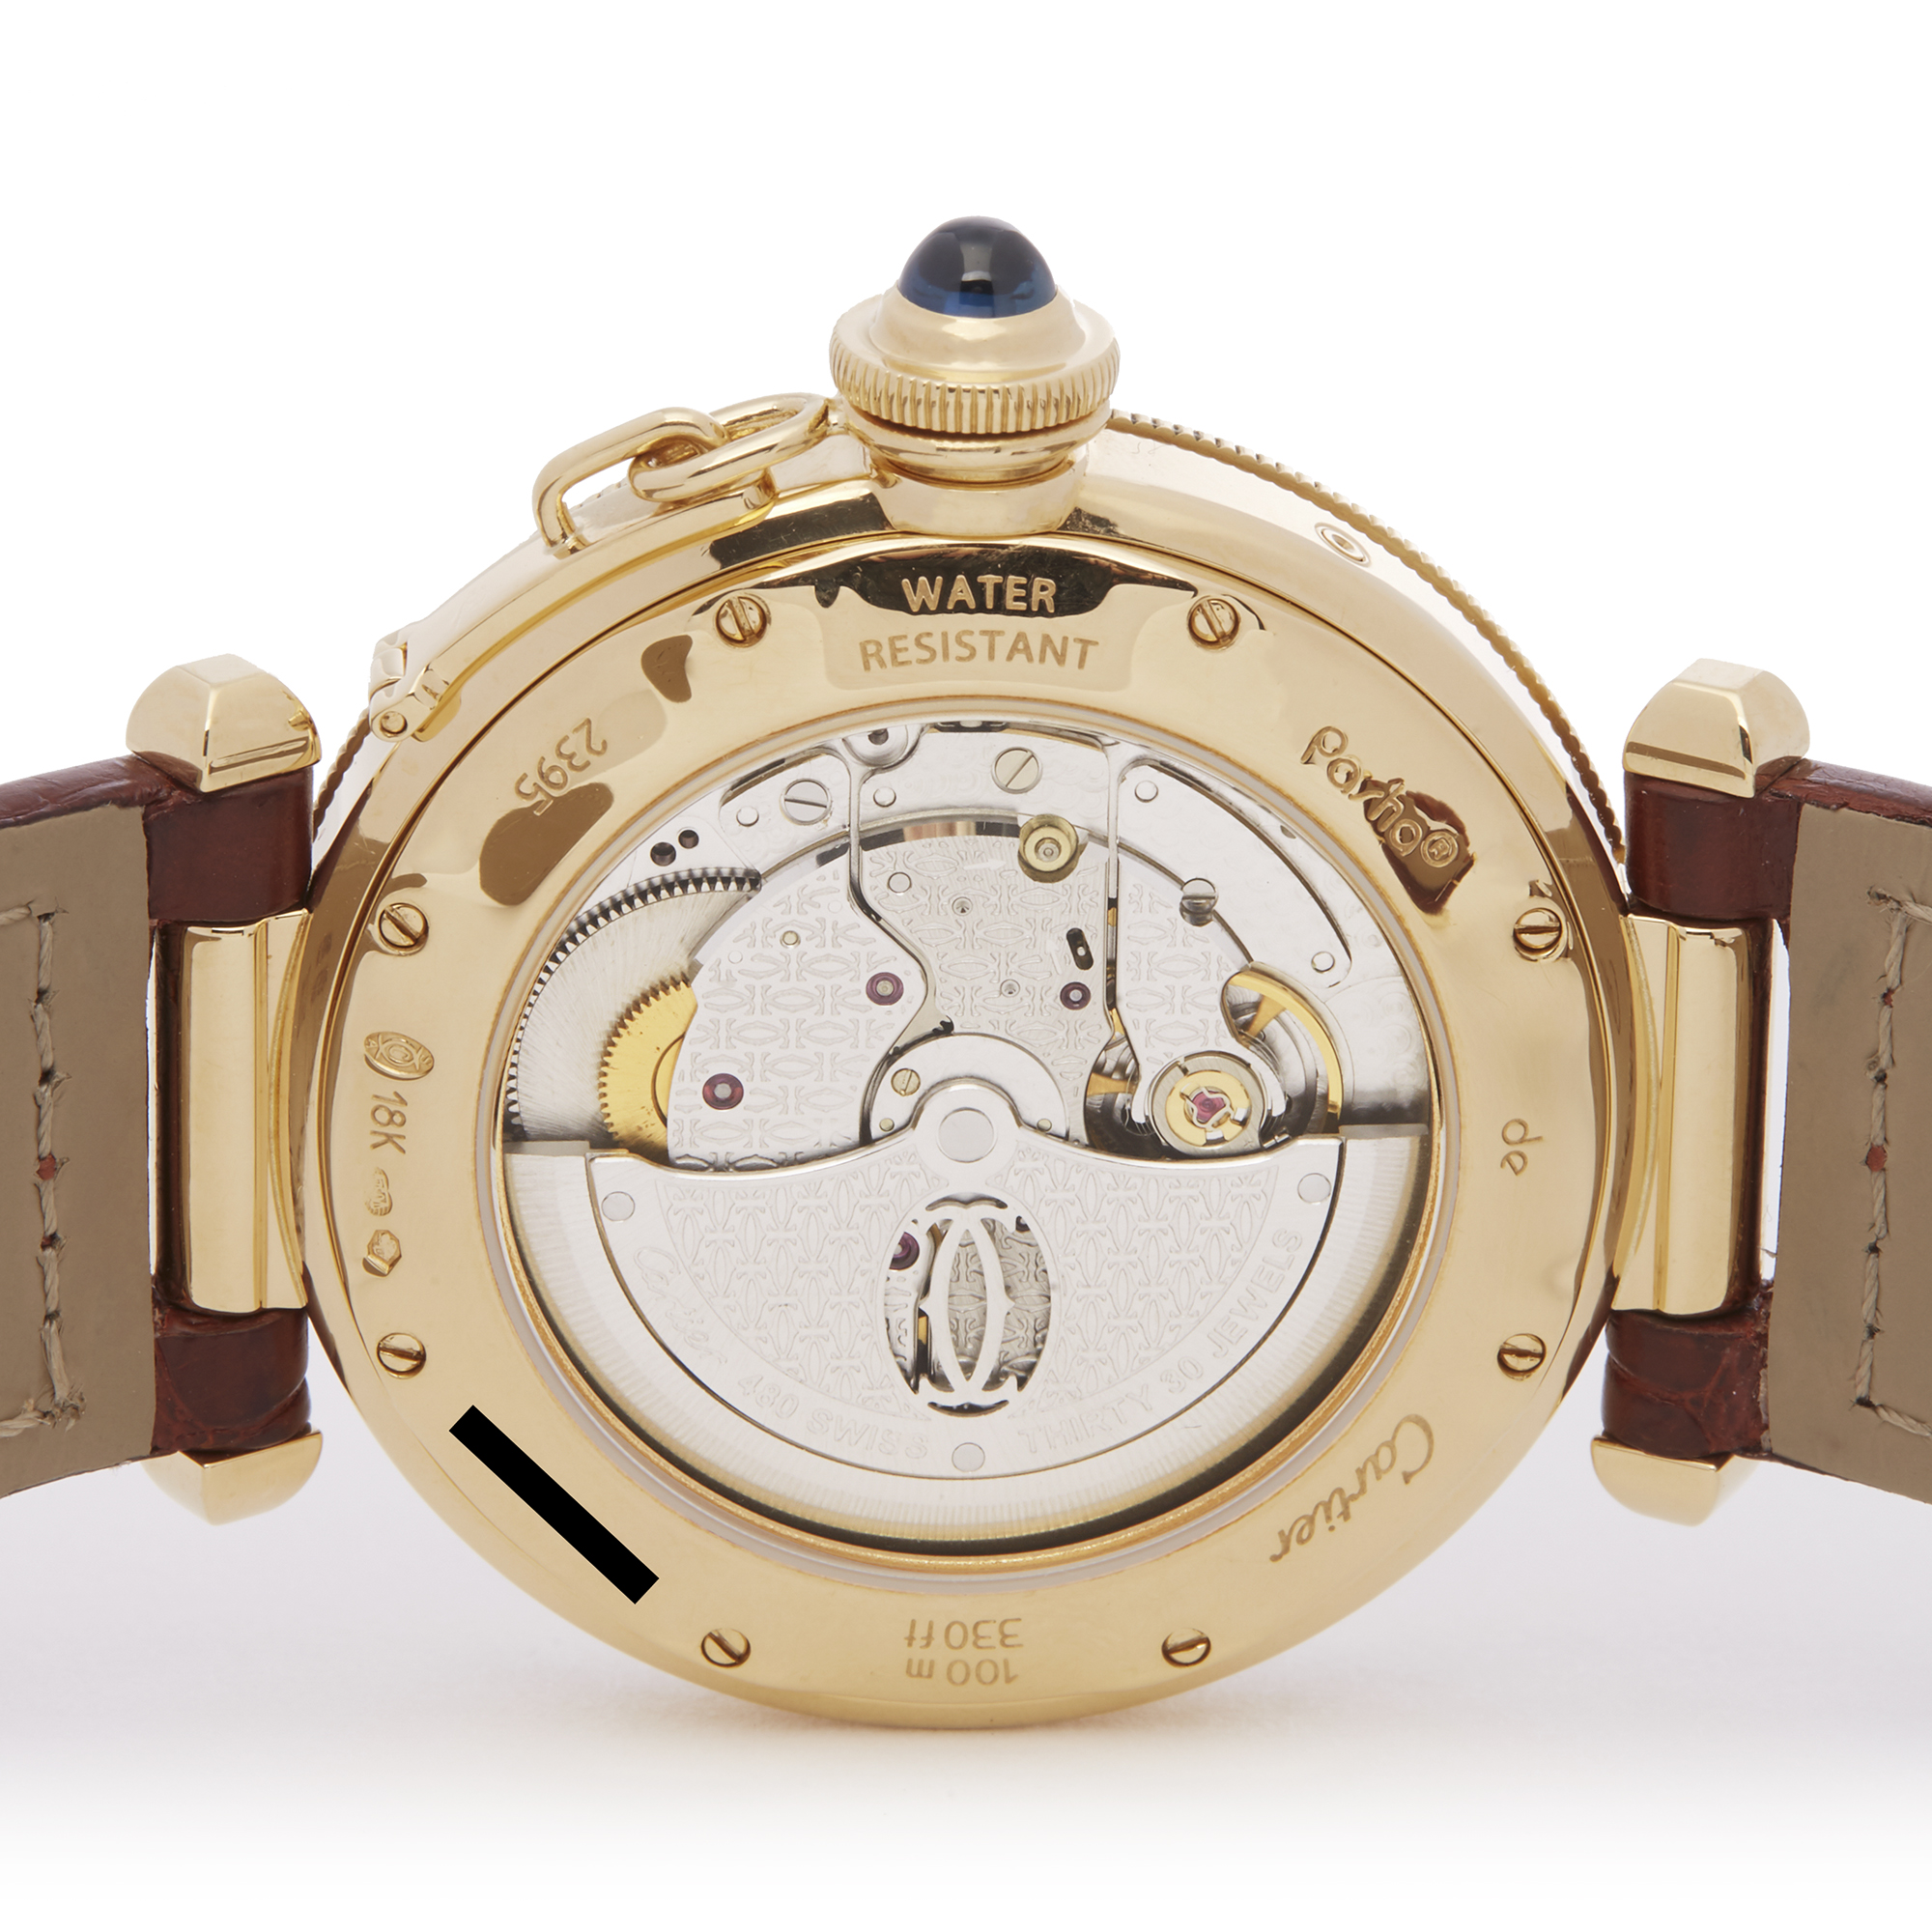 Cartier Pasha Seatimer W3014456 or 2395 Men Yellow Gold Watch - Image 5 of 9